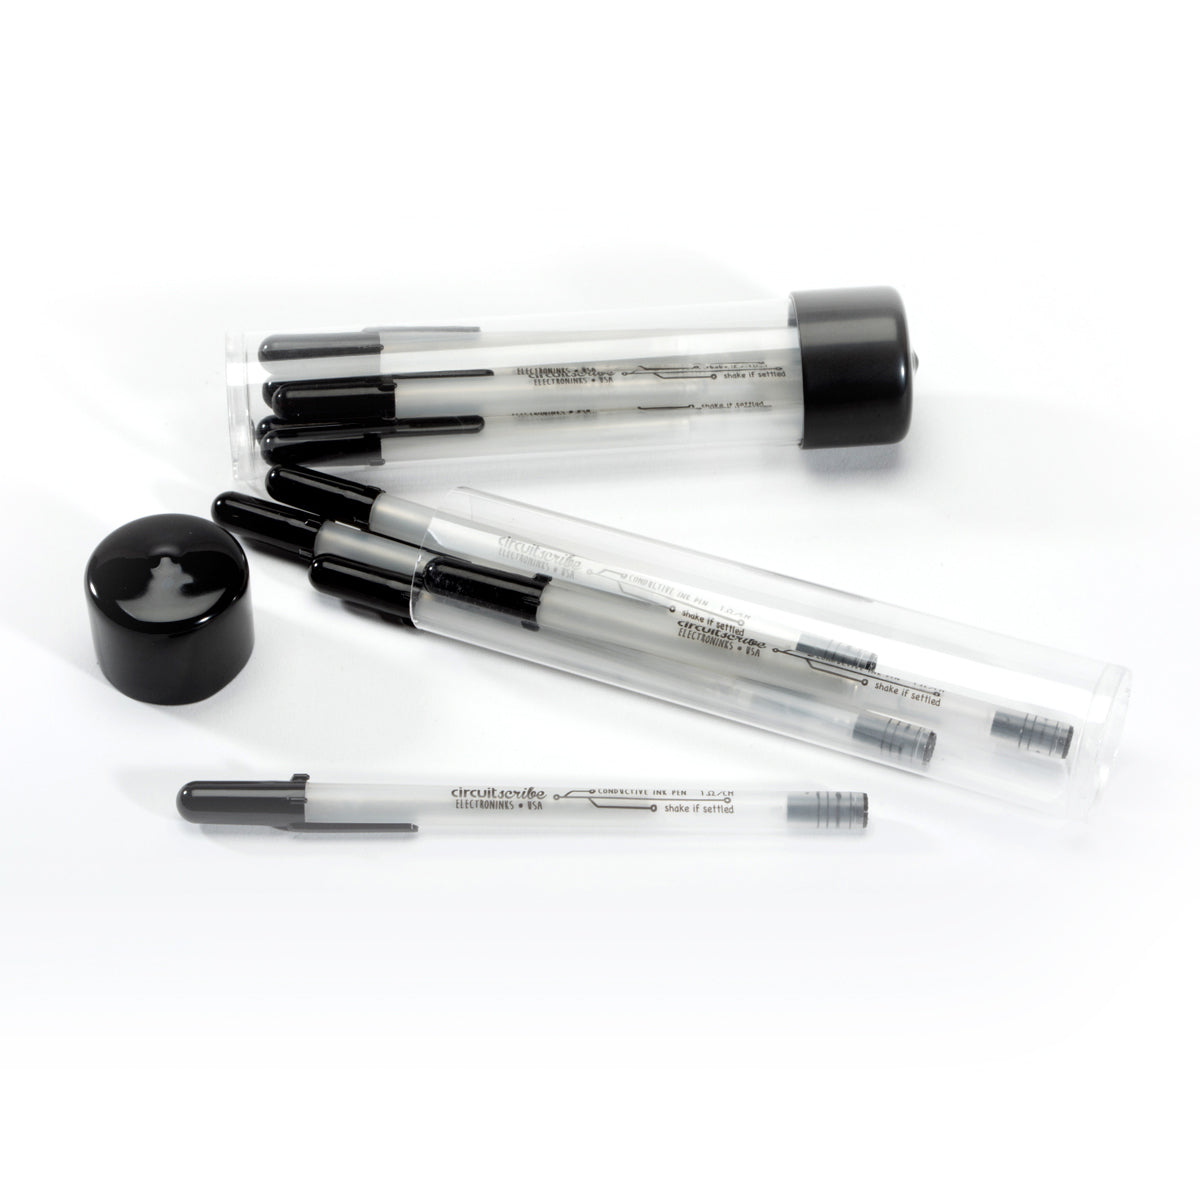 A pack of Circuit Scribe conductive ink pens on a white background.